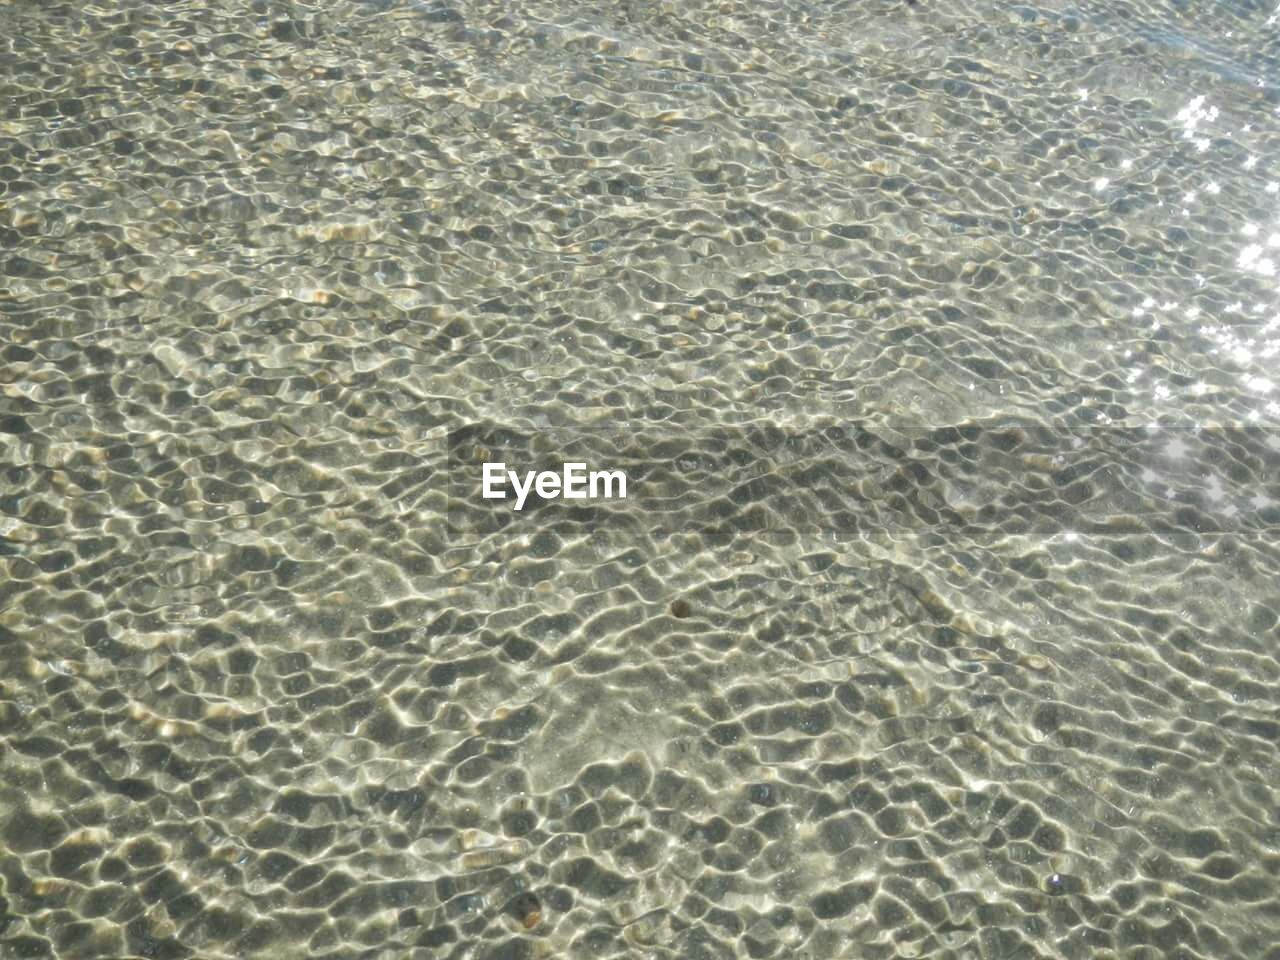 backgrounds, full frame, rippled, pattern, no people, water, abstract, day, high angle view, shallow, textured, nature, refraction, outdoors, close-up